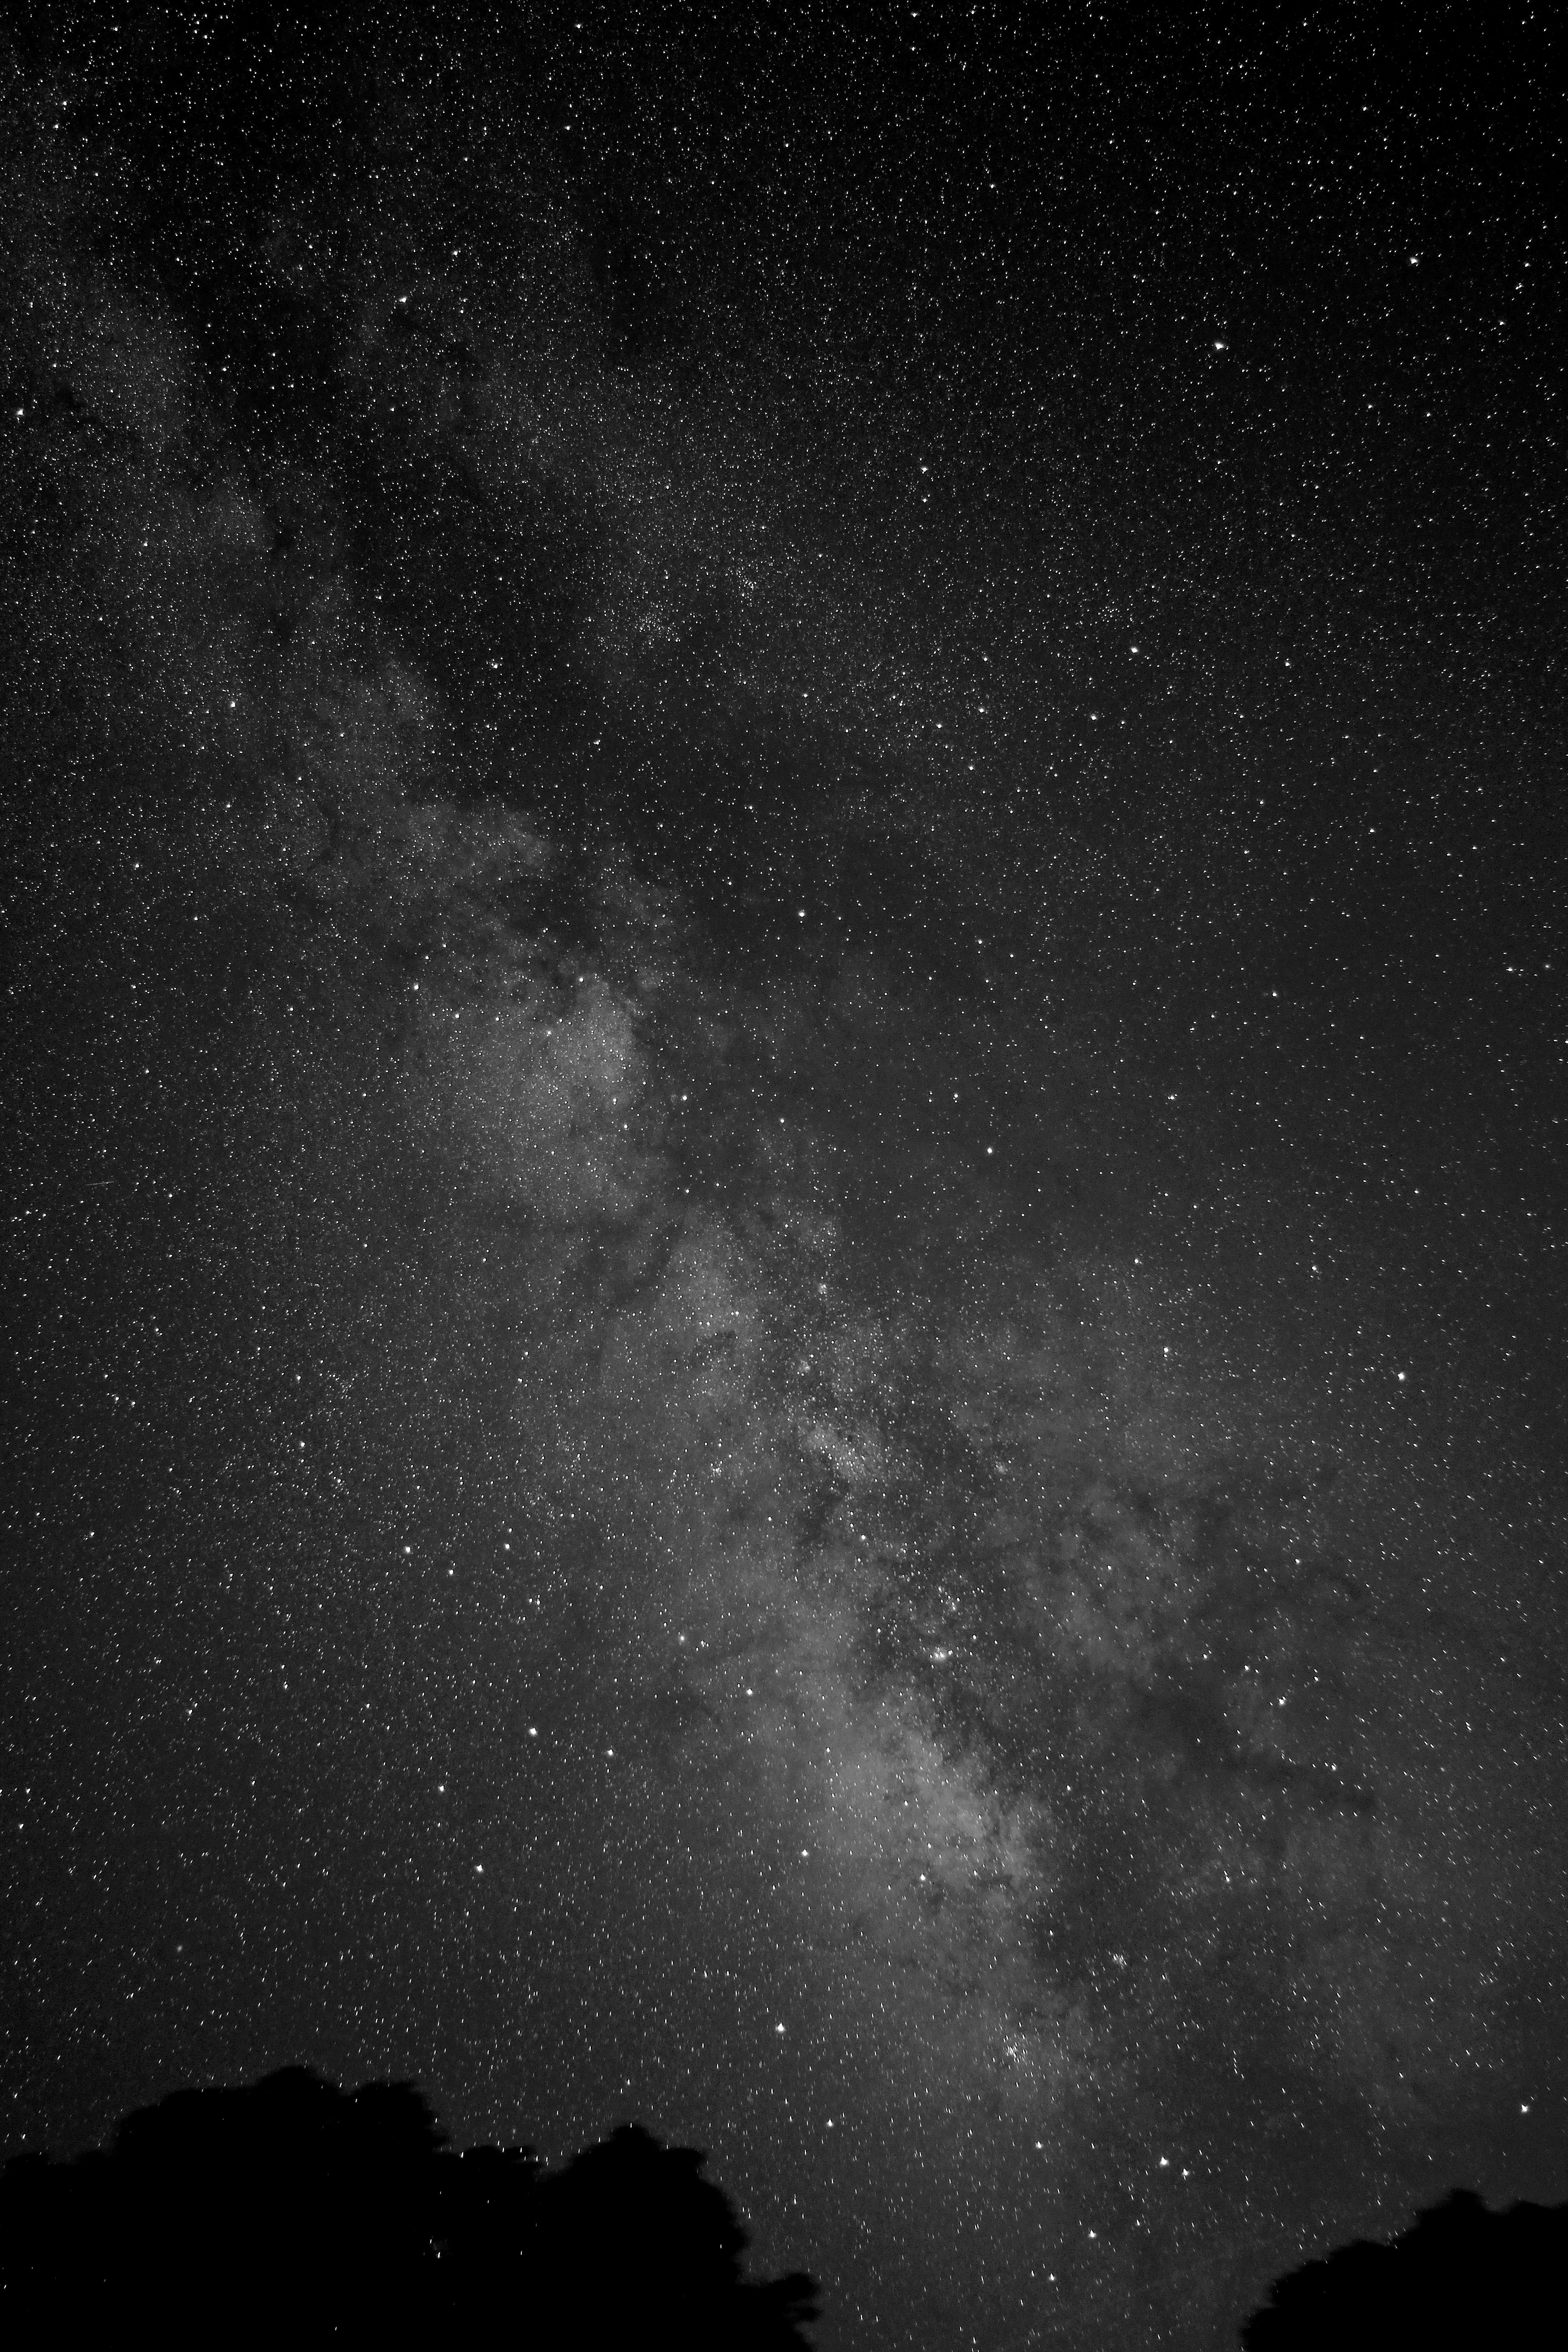 Victor Rogus Took This Black And White Image Of The Milky Way On July 13 2013 From Jadwi Night Sky Photos Black Background Painting Black And White Background Galaxy cool black and white wallpaper